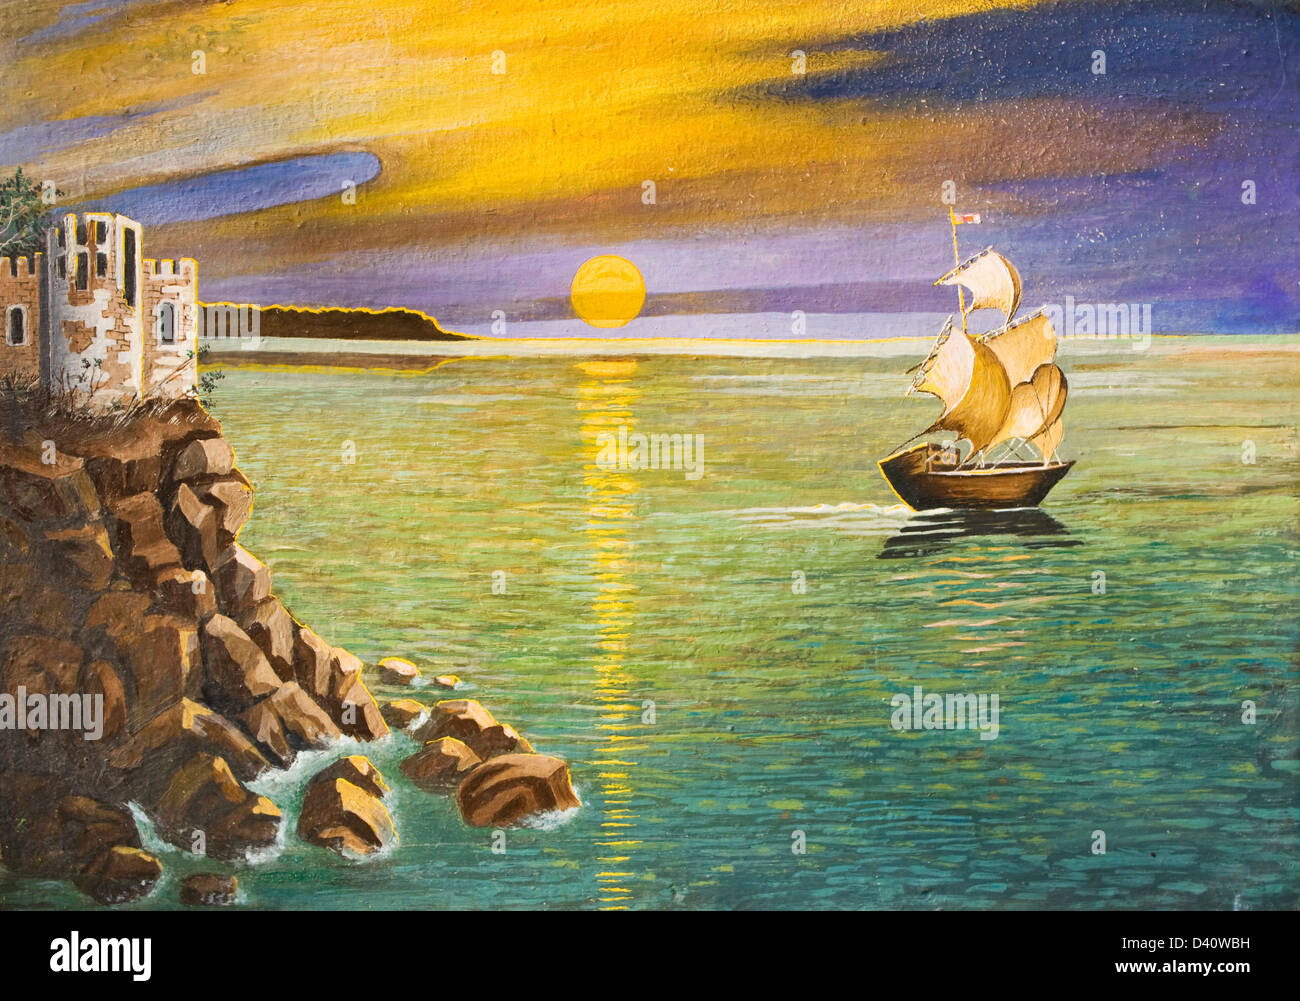 My own picture, oil painting, hand made. Sea landscape with sailing ship and castle on rock, sunset. - Stock Image